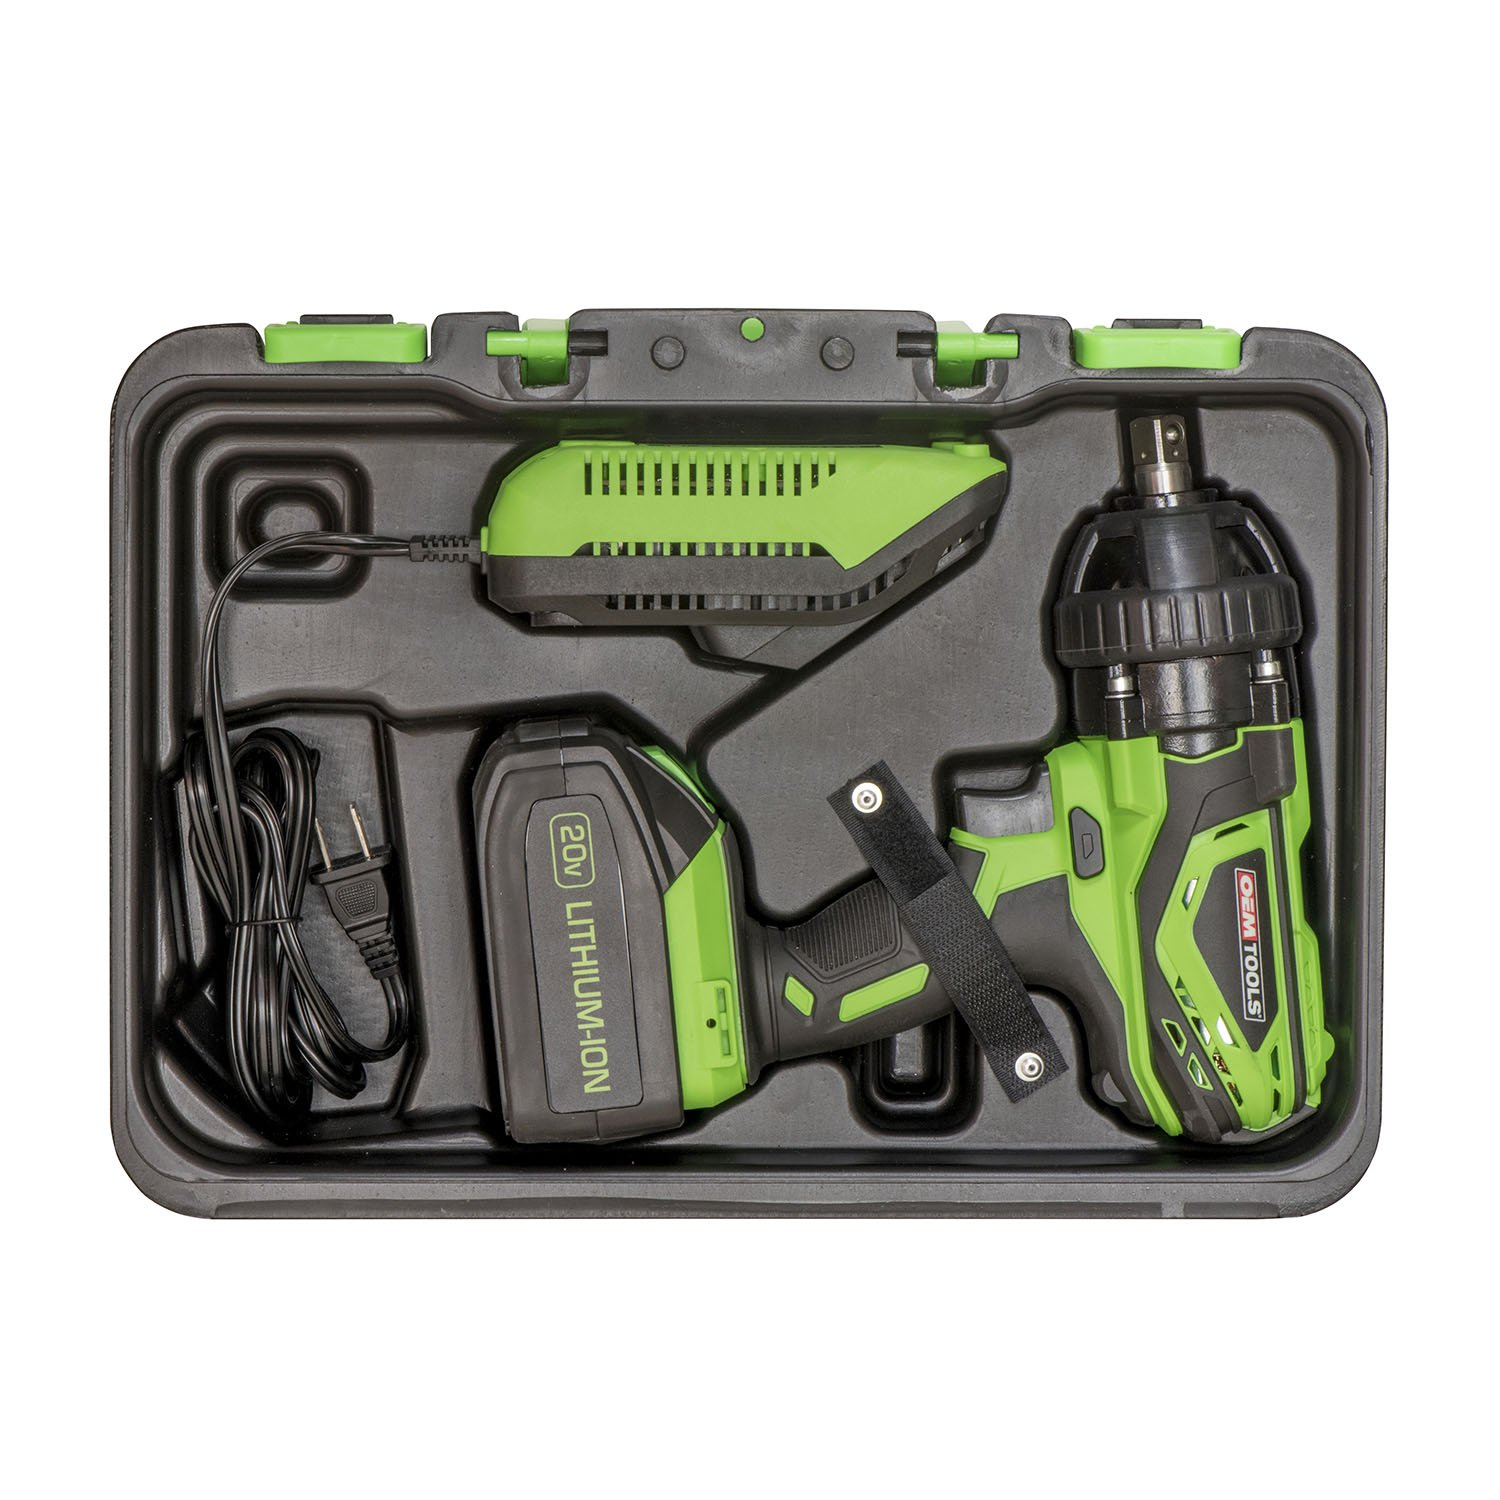 71Phs3tXNSL._SL1500_ OEMTools Impact Wrench Review